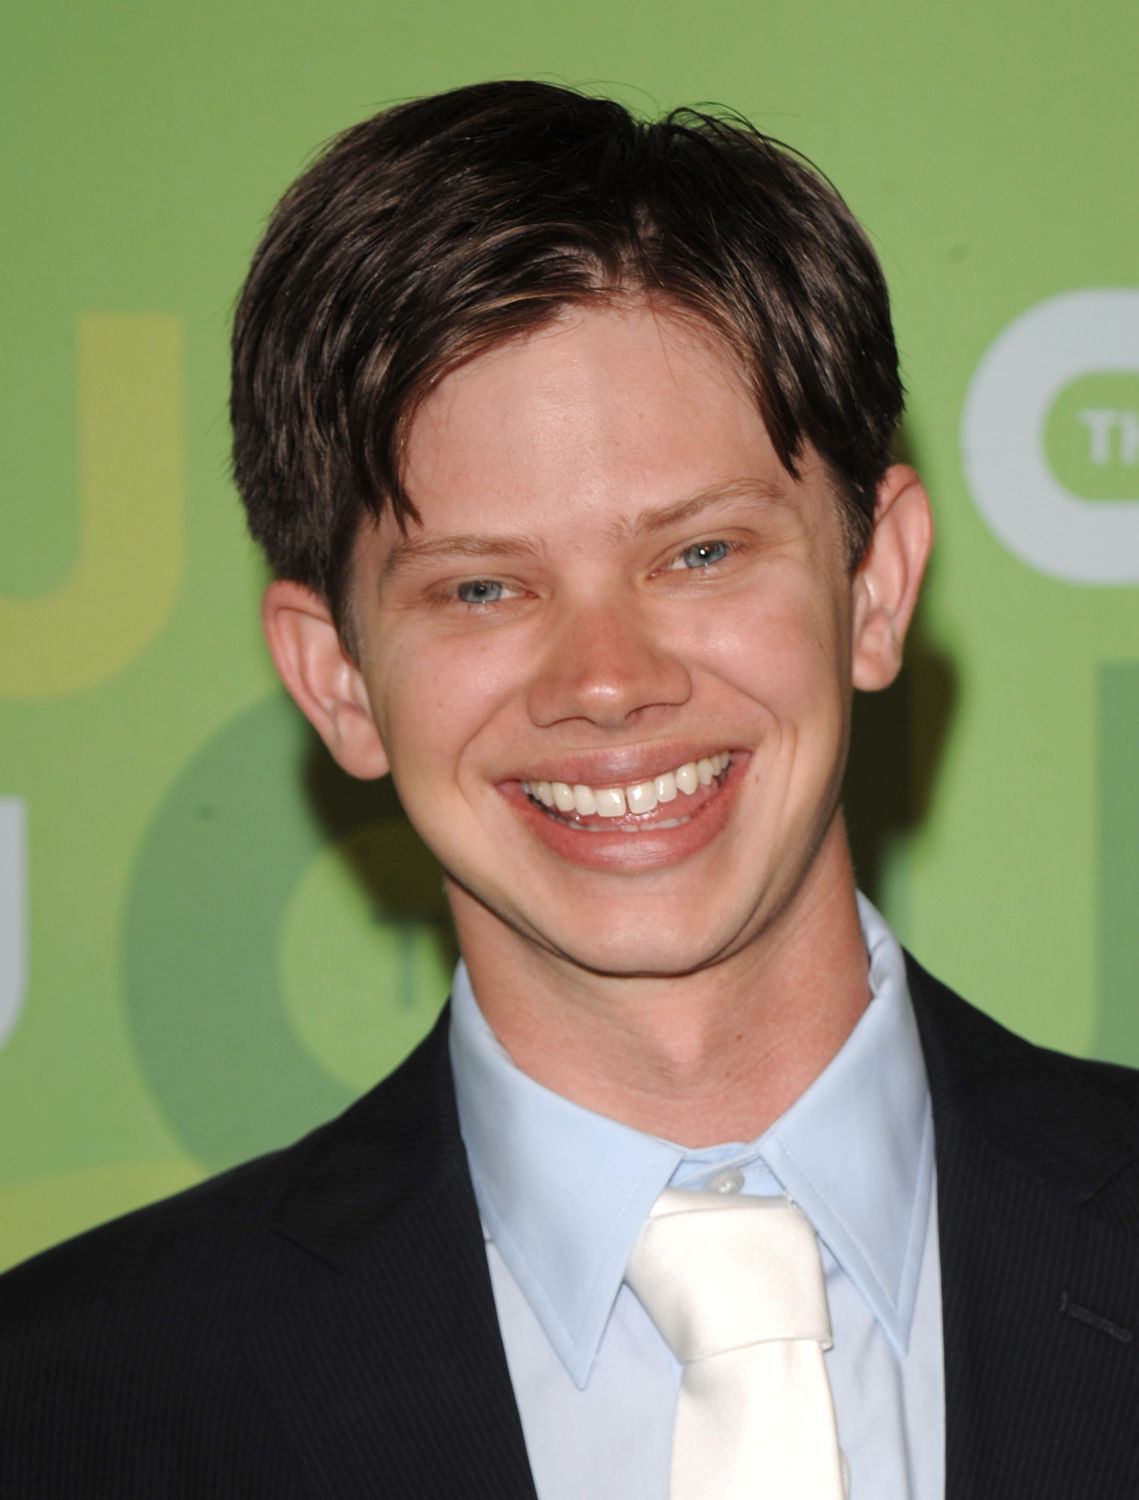 lee norris nowlee norris instagram, lee norris net worth, lee norris, lee norris boy meets world, lee norris now, lee norris wife, lee norris 2018, lee norris 2019, lee norris walking dead, lee norris femme, lee norris transgender, lee norris imdb, lee norris chanel, lee norris one tree hill, lee norris gone girl, lee norris girl meets world, lee norris age, lee norris parents, lee norris et sa femme, lee norris height